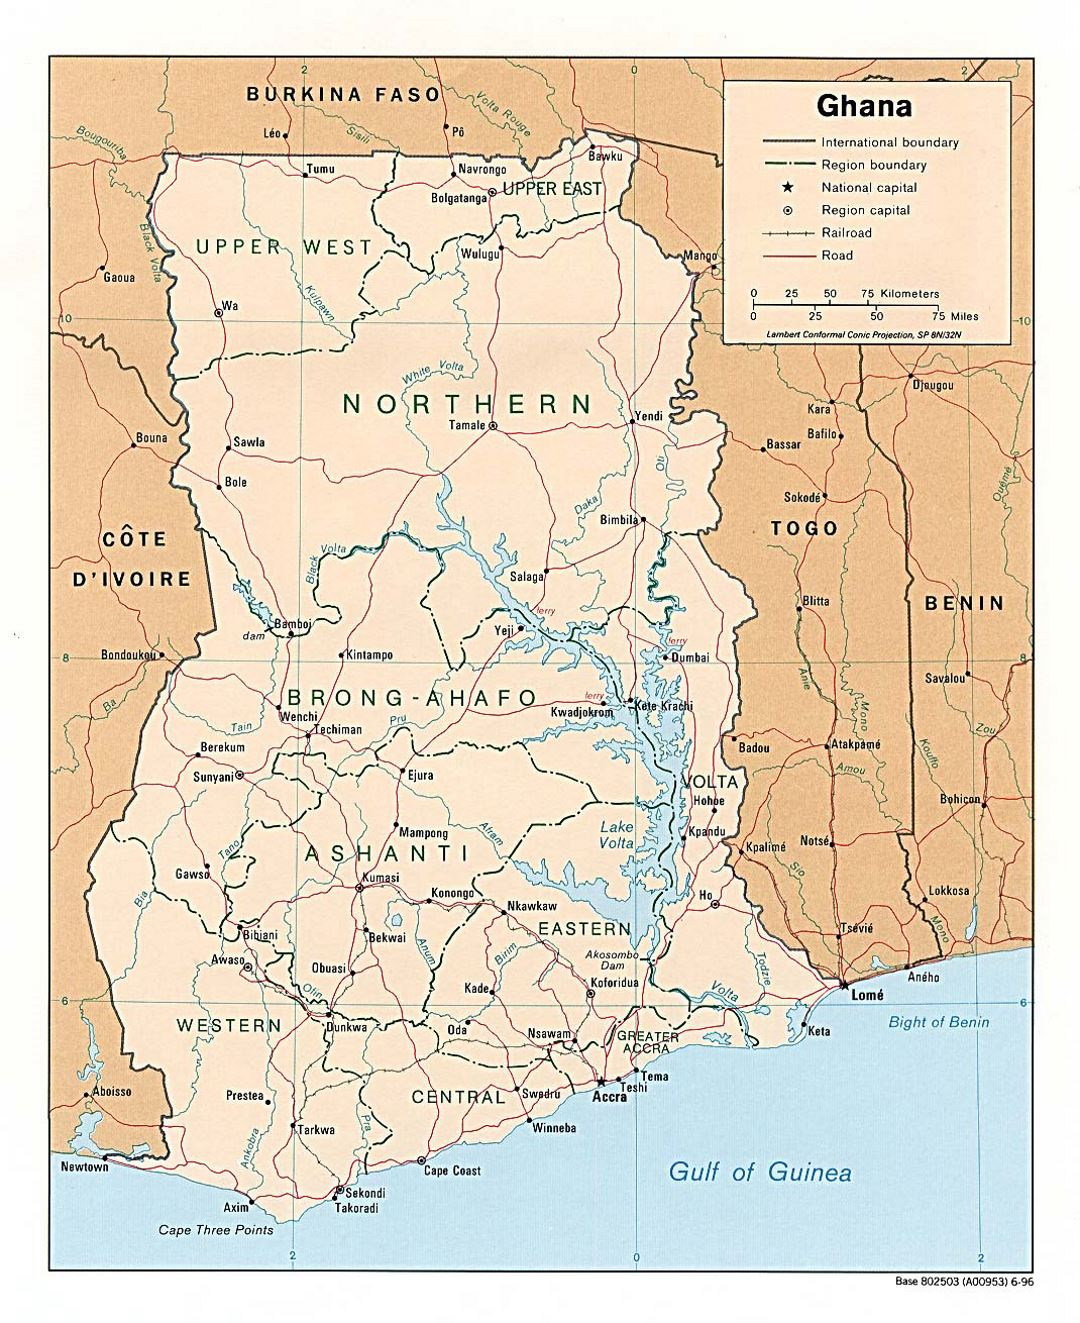 Detailed political and administrative map of Ghana with roads, railroads and major cities - 1996